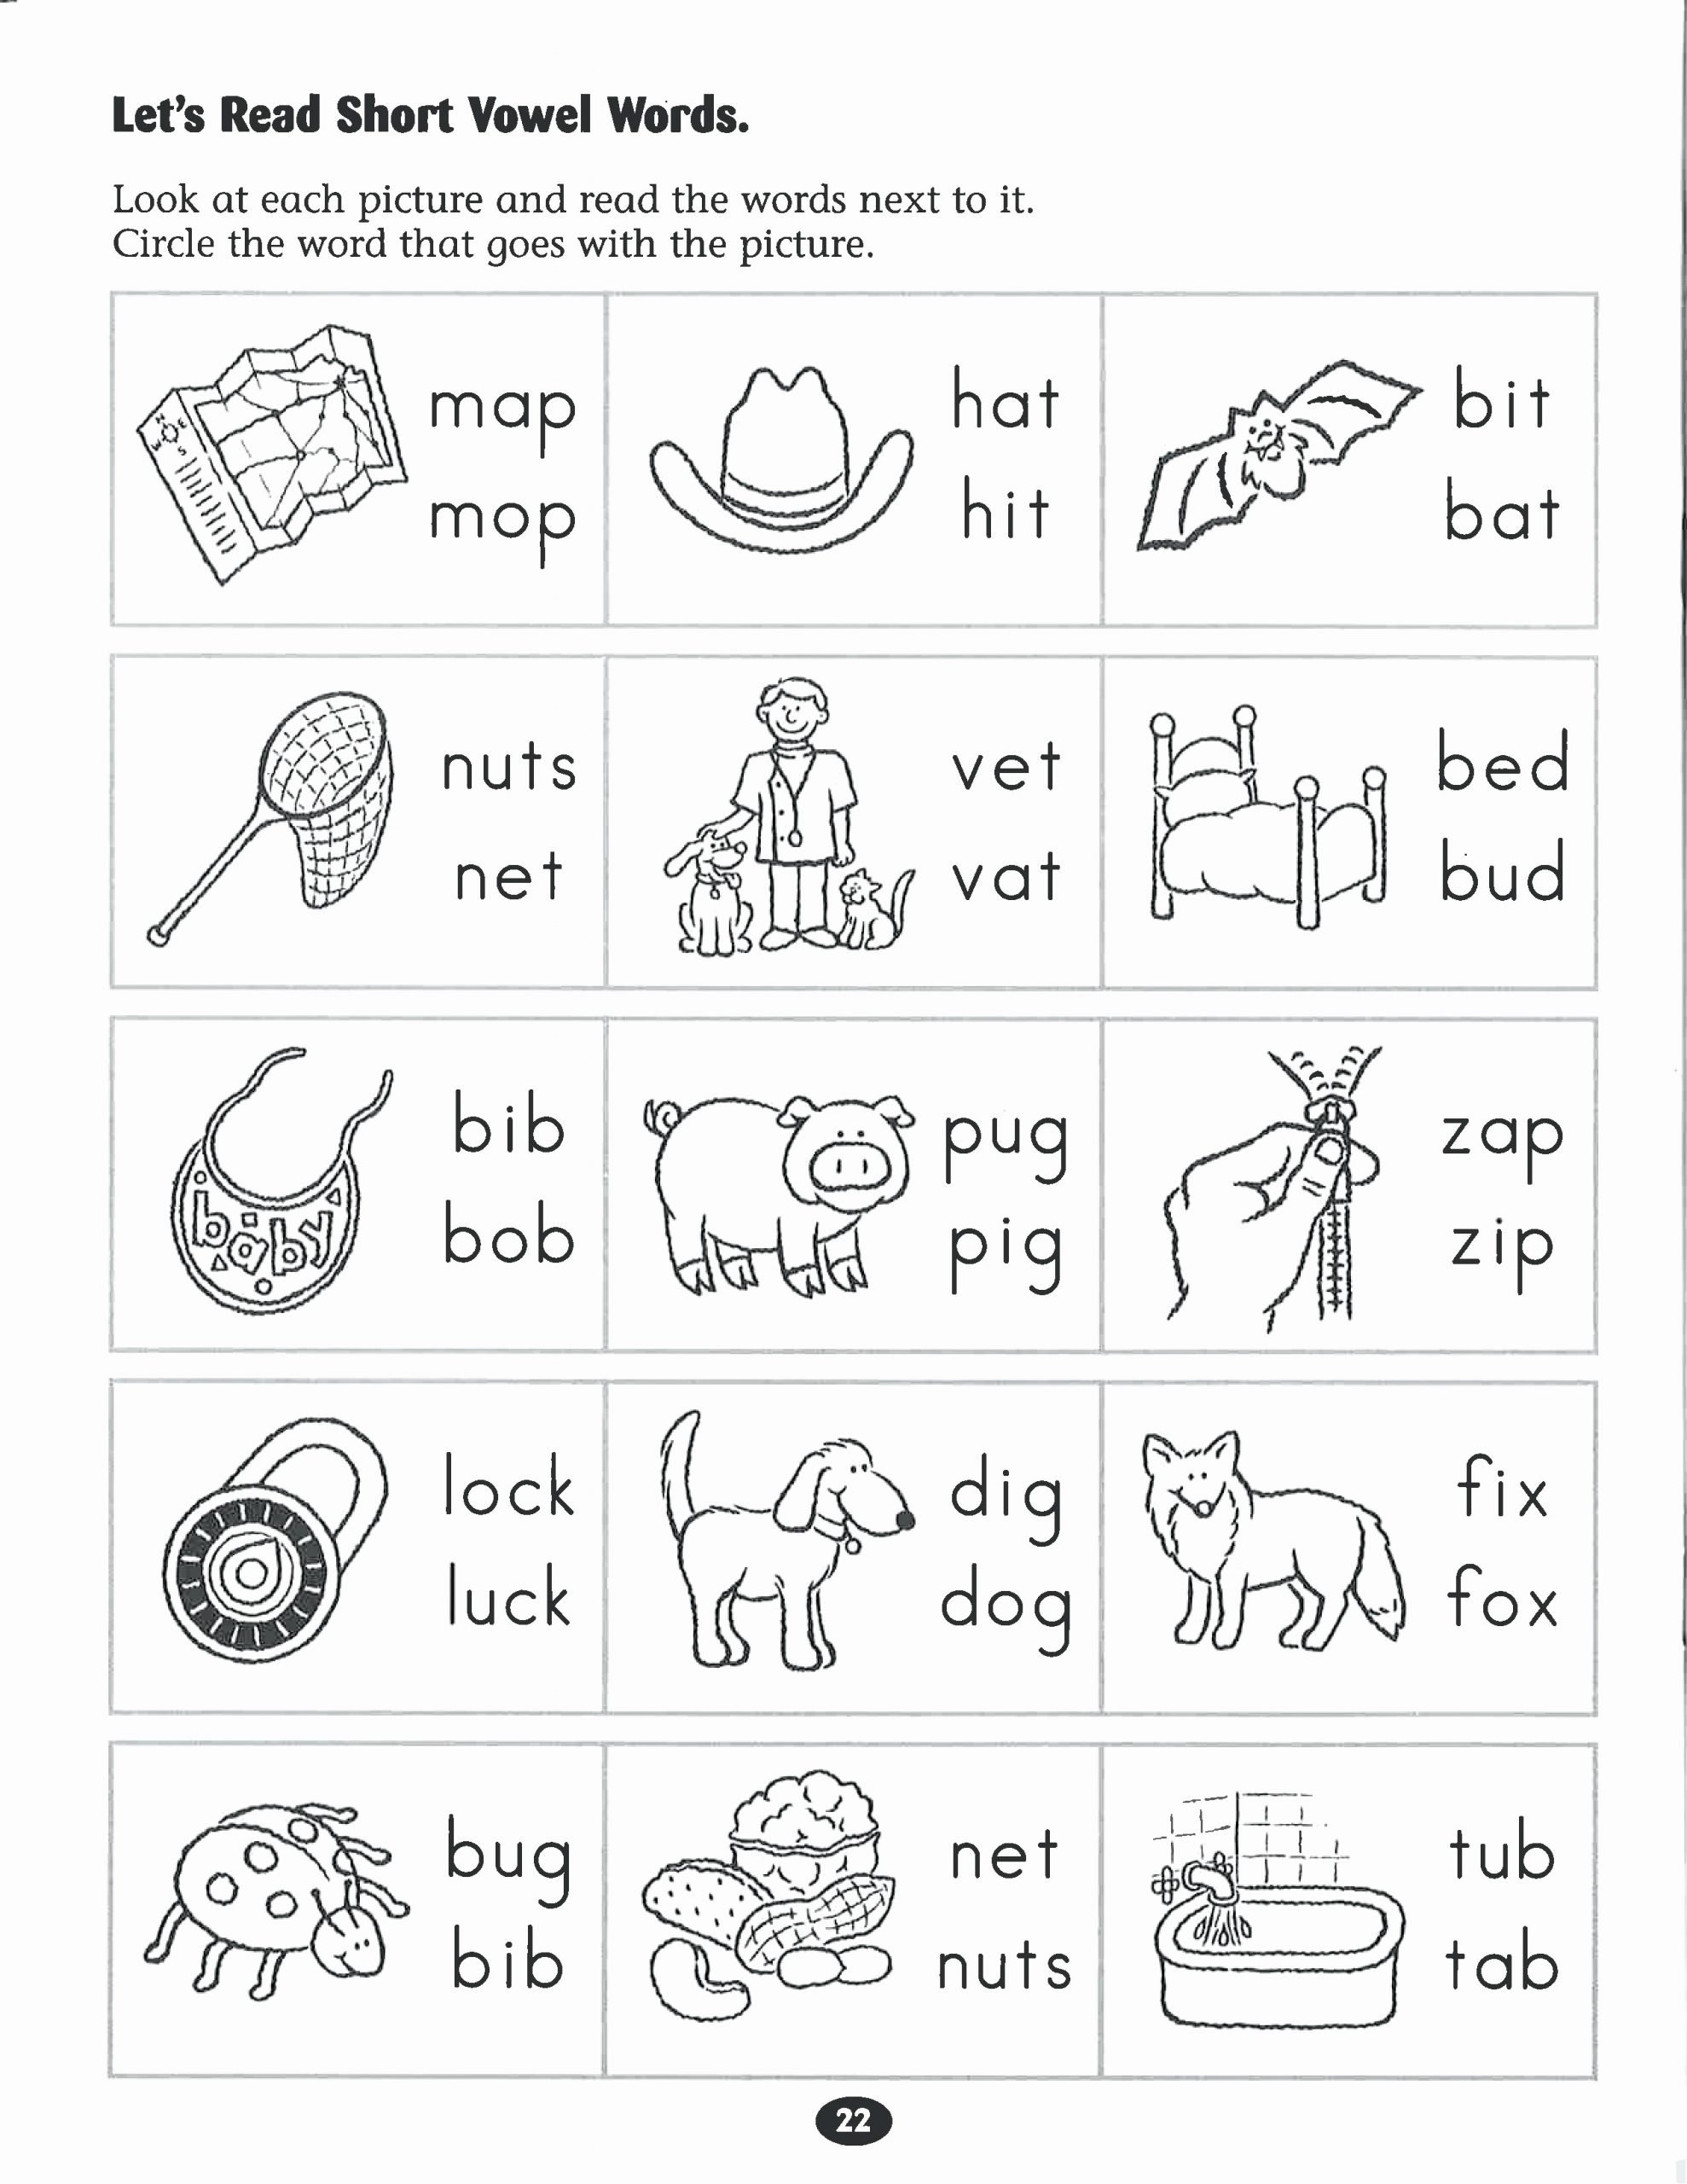 Jolly Phonics Worksheets for Preschoolers Beautiful Jolly Phonics Tensesa Worksheet